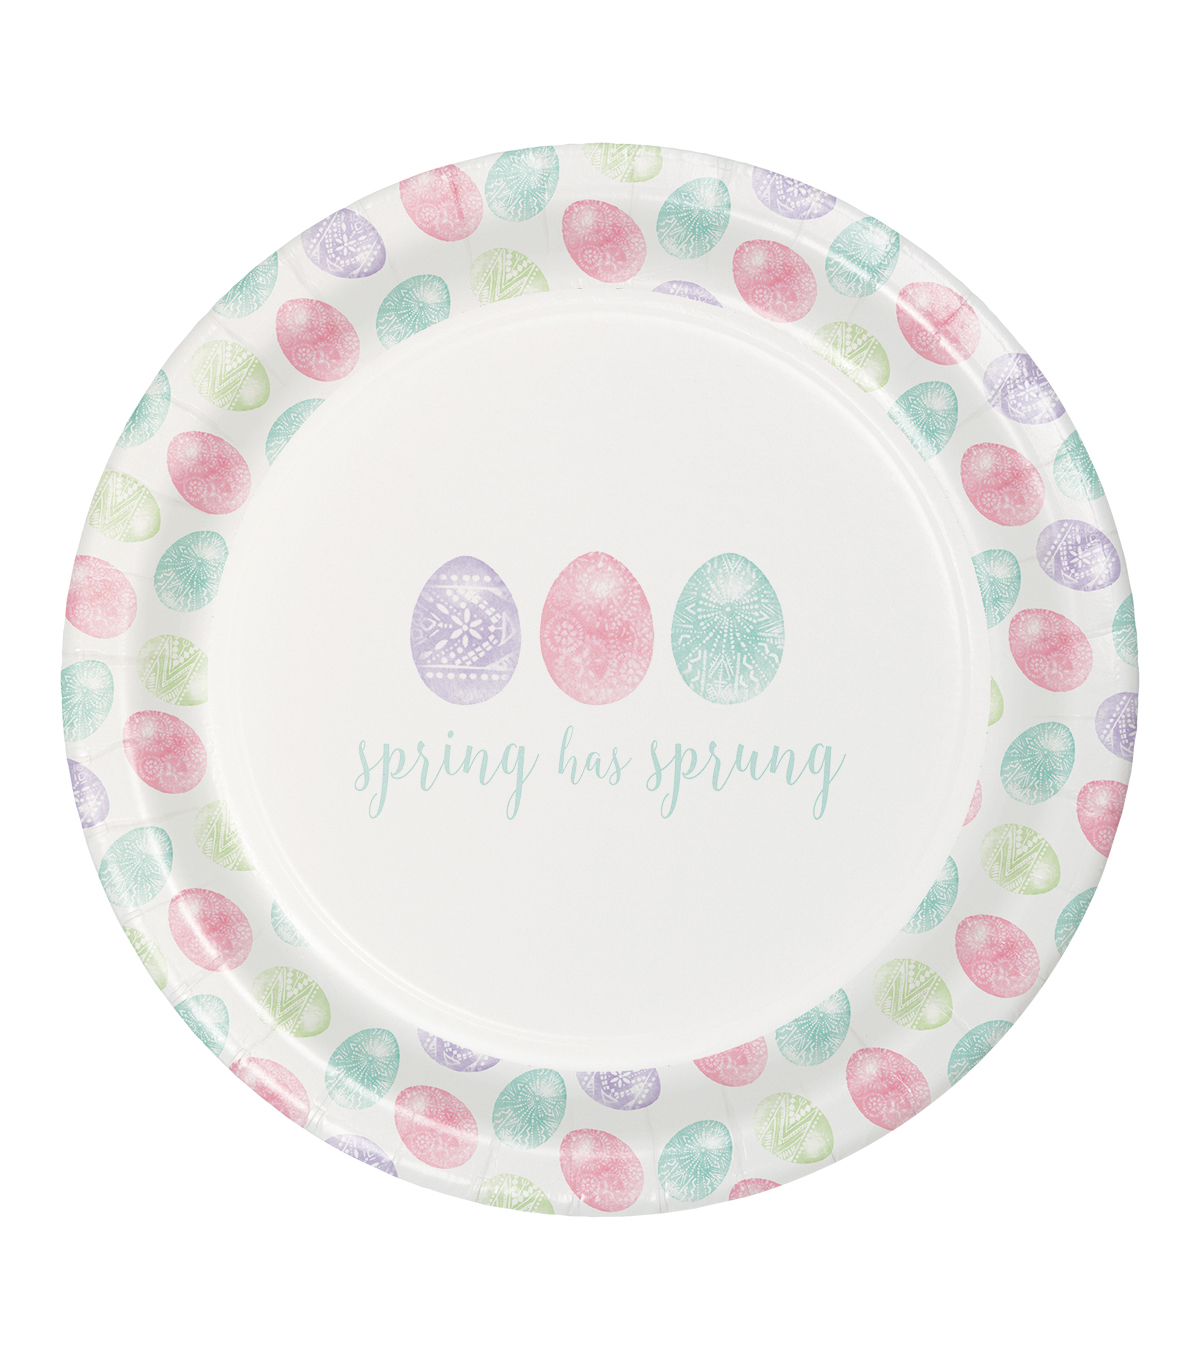 Easter Decor 8 pk Paper Dinner Plates-Painted Eggs & Spring has Sprung